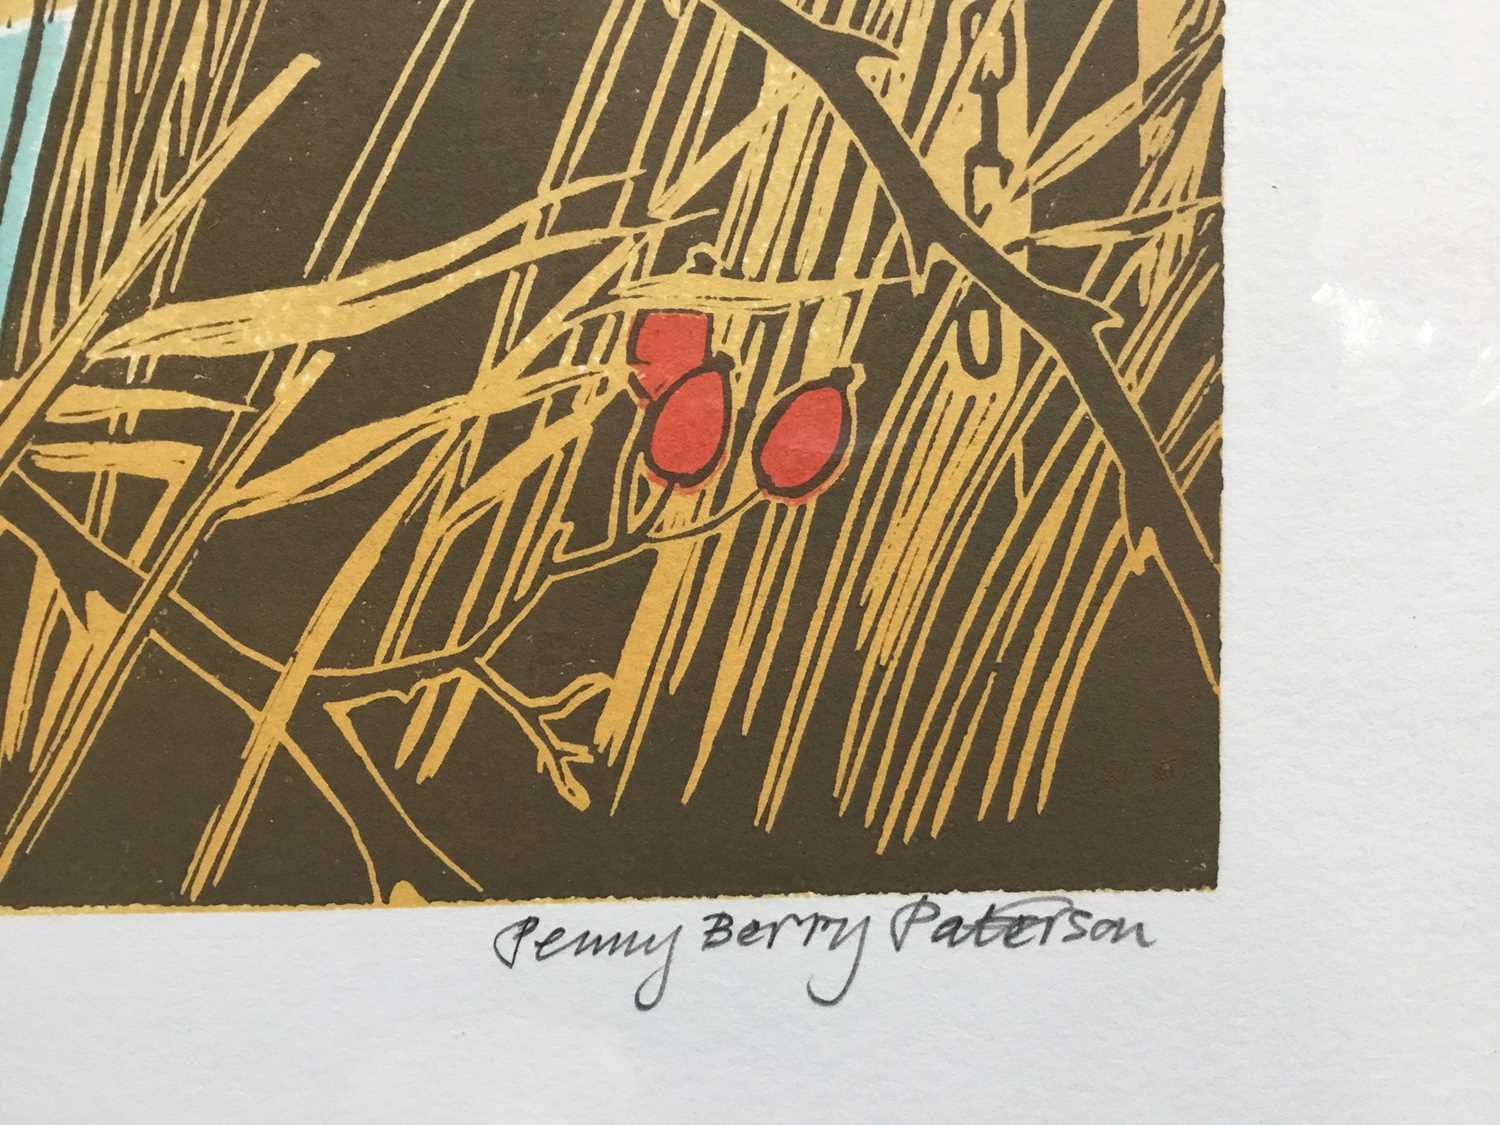 Penny Berry Paterson (1941-2021) colour linocut print, Waxwings at Minsmere, signed and numbered 11/ - Image 2 of 3